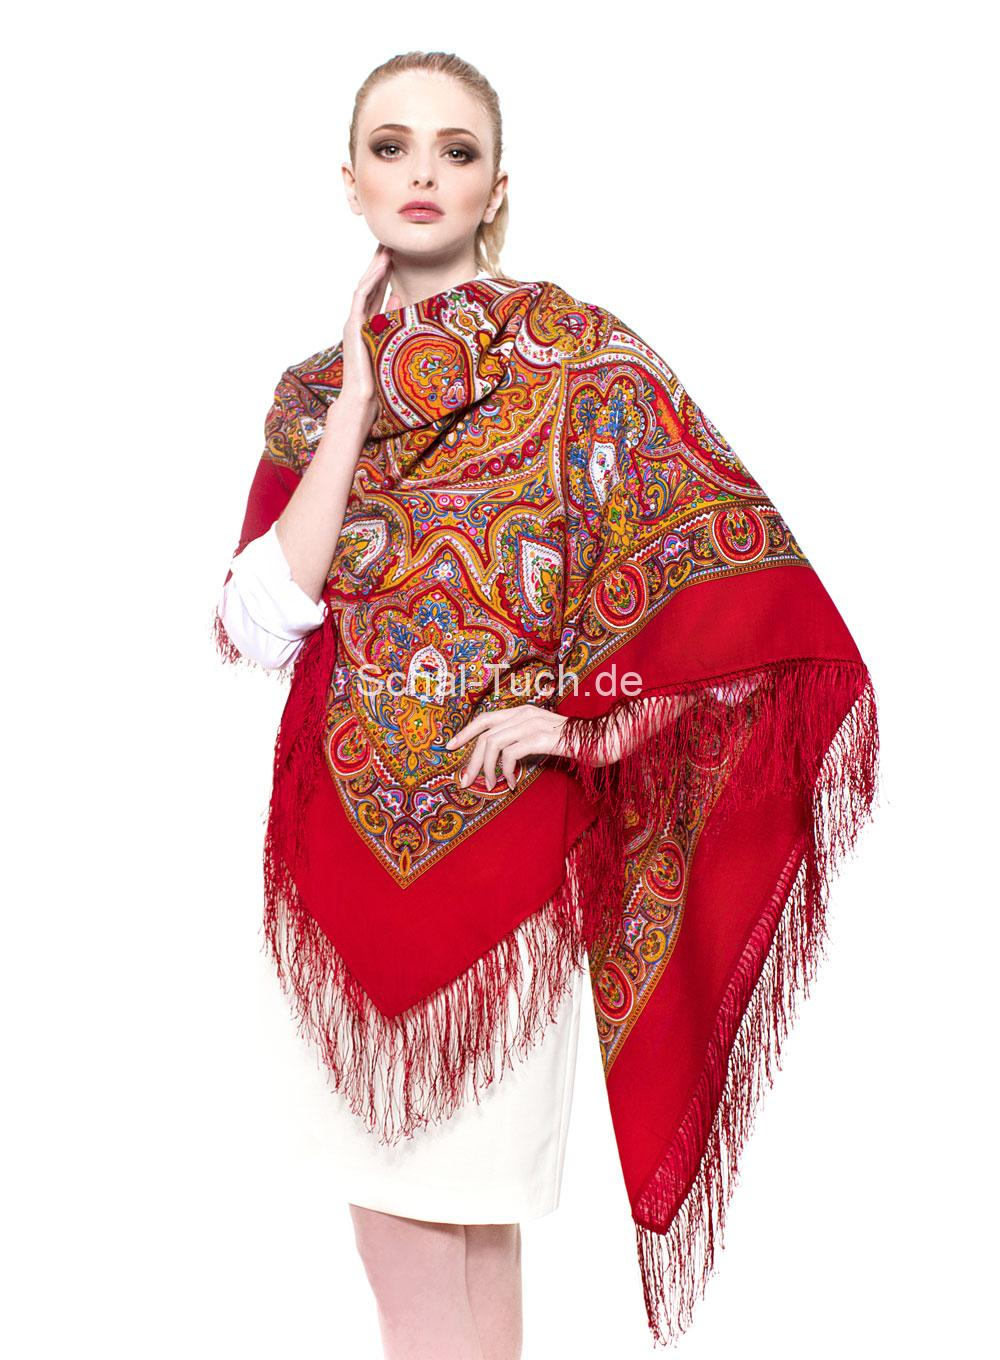 Paisley-Tuch in rot aus reiner Wolle - LAURA